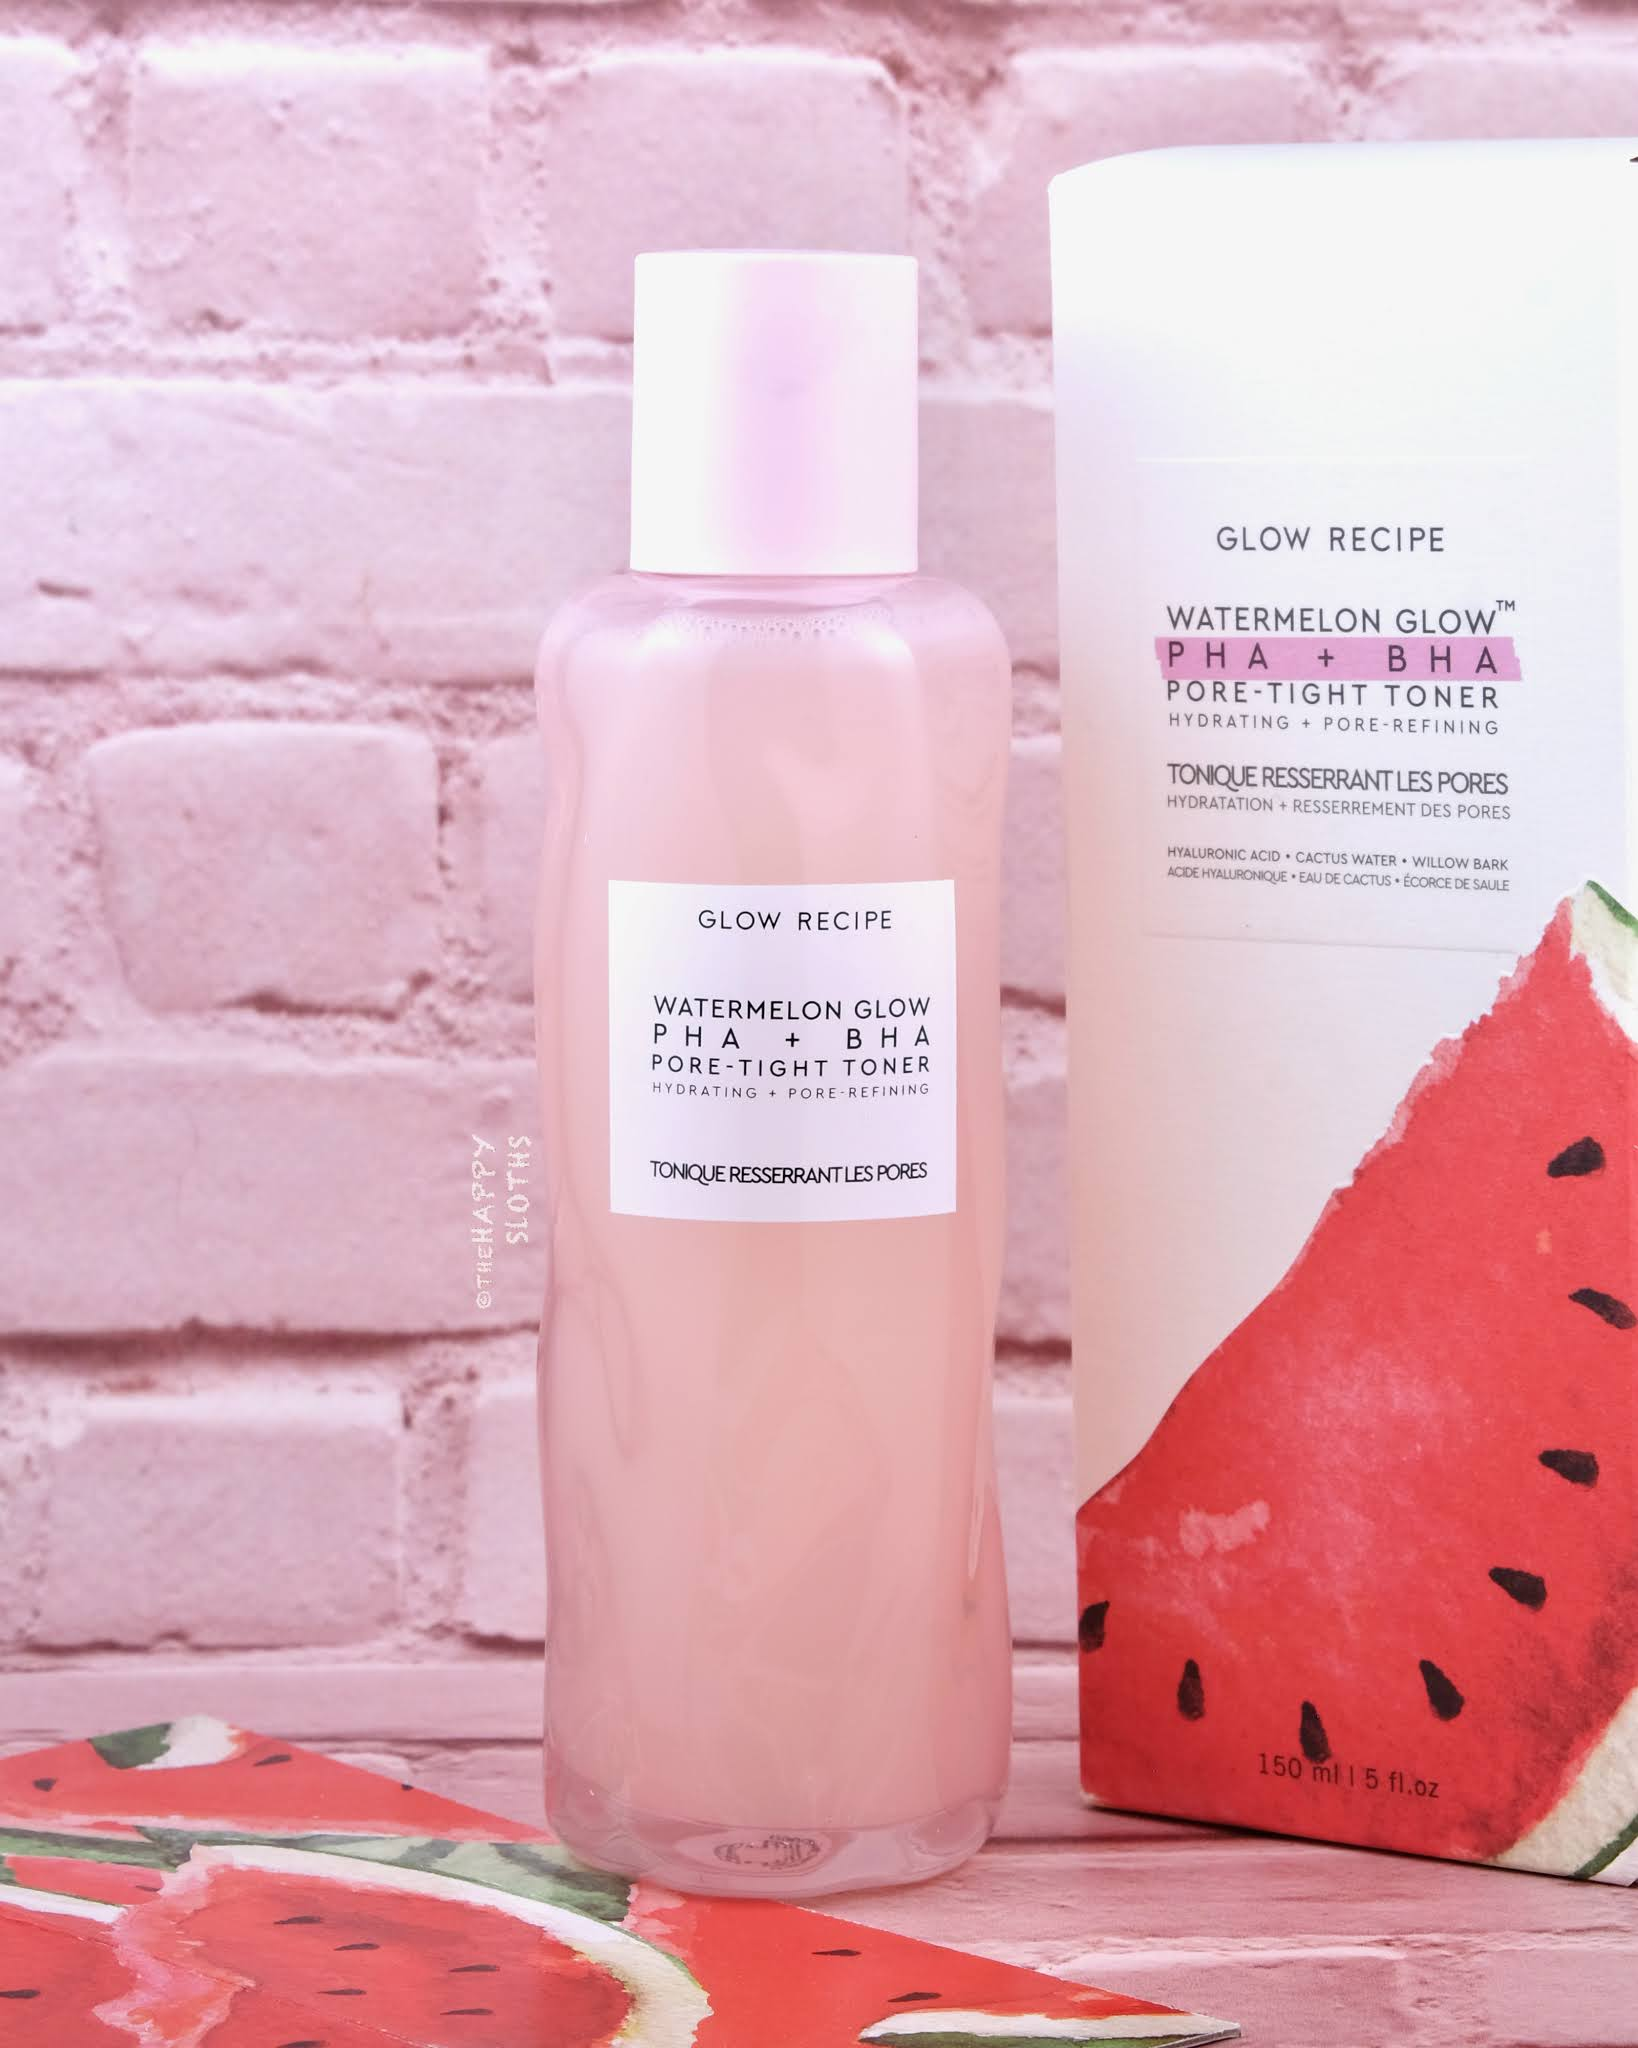 Glow Recipe | Watermelon Glow PHA + BHA Pore-Tight Toner: Review